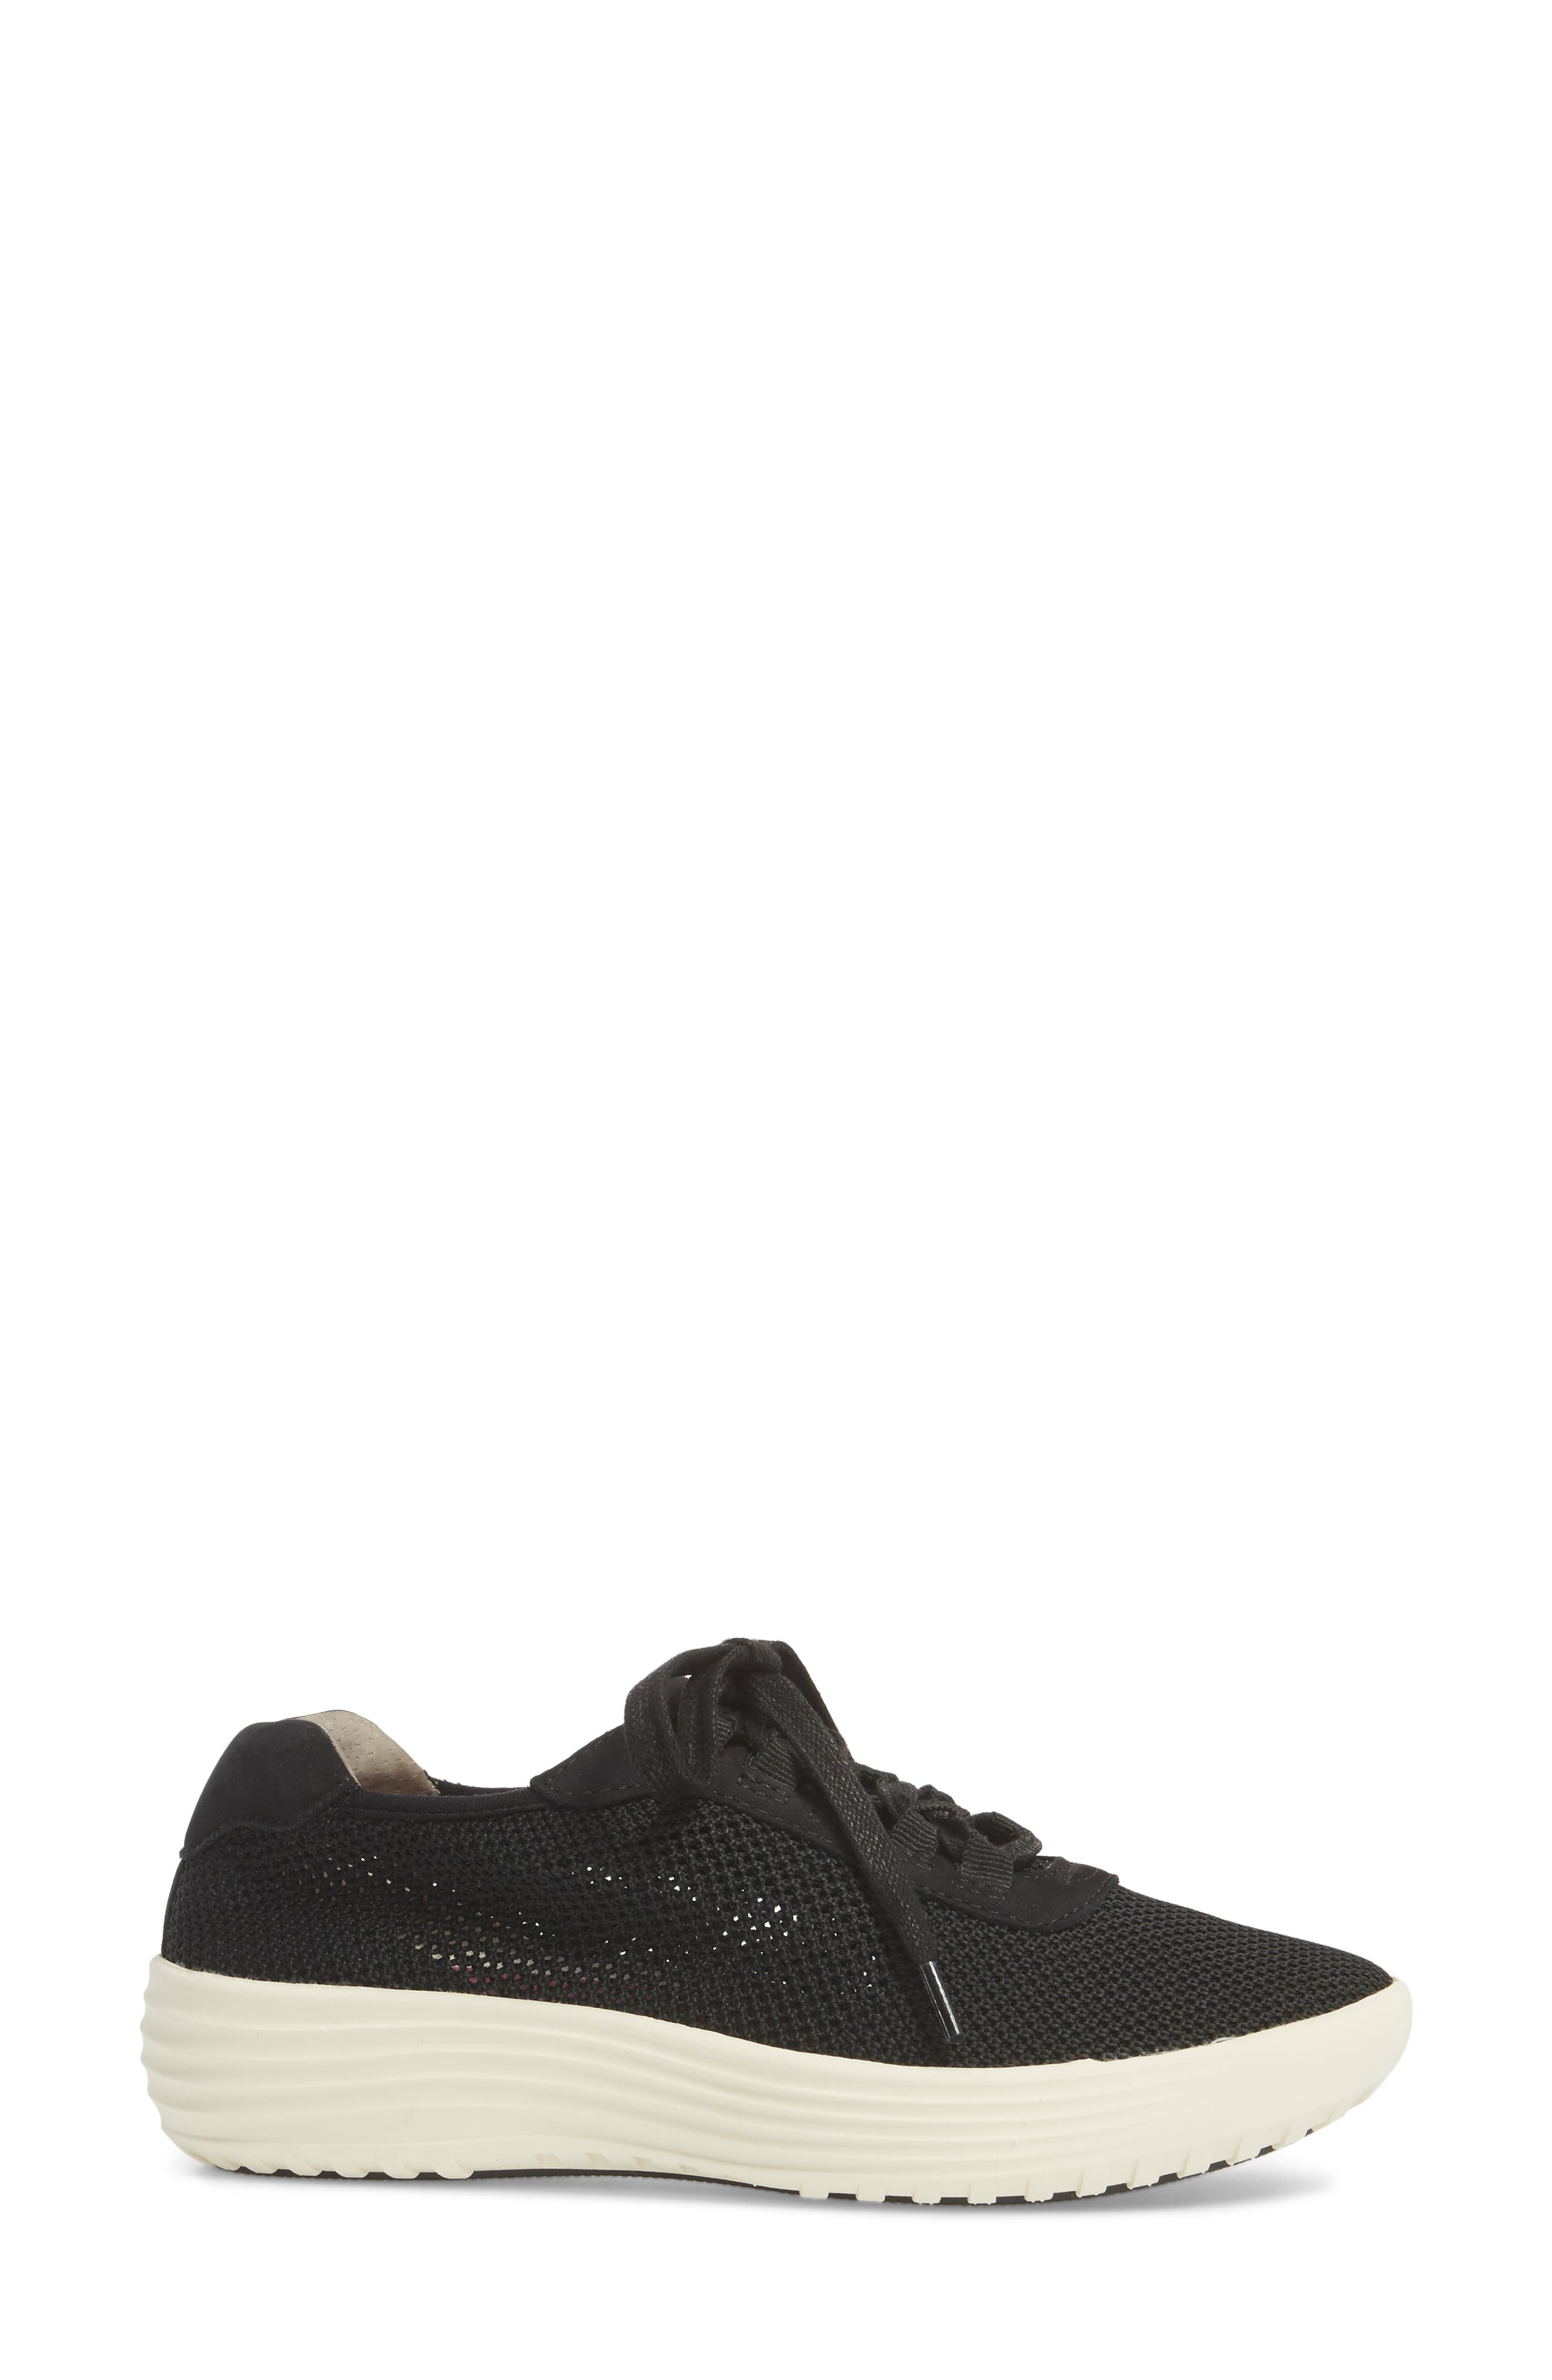 Malibu Sneaker,                             Alternate thumbnail 3, color,                             BLACK KNIT FABRIC